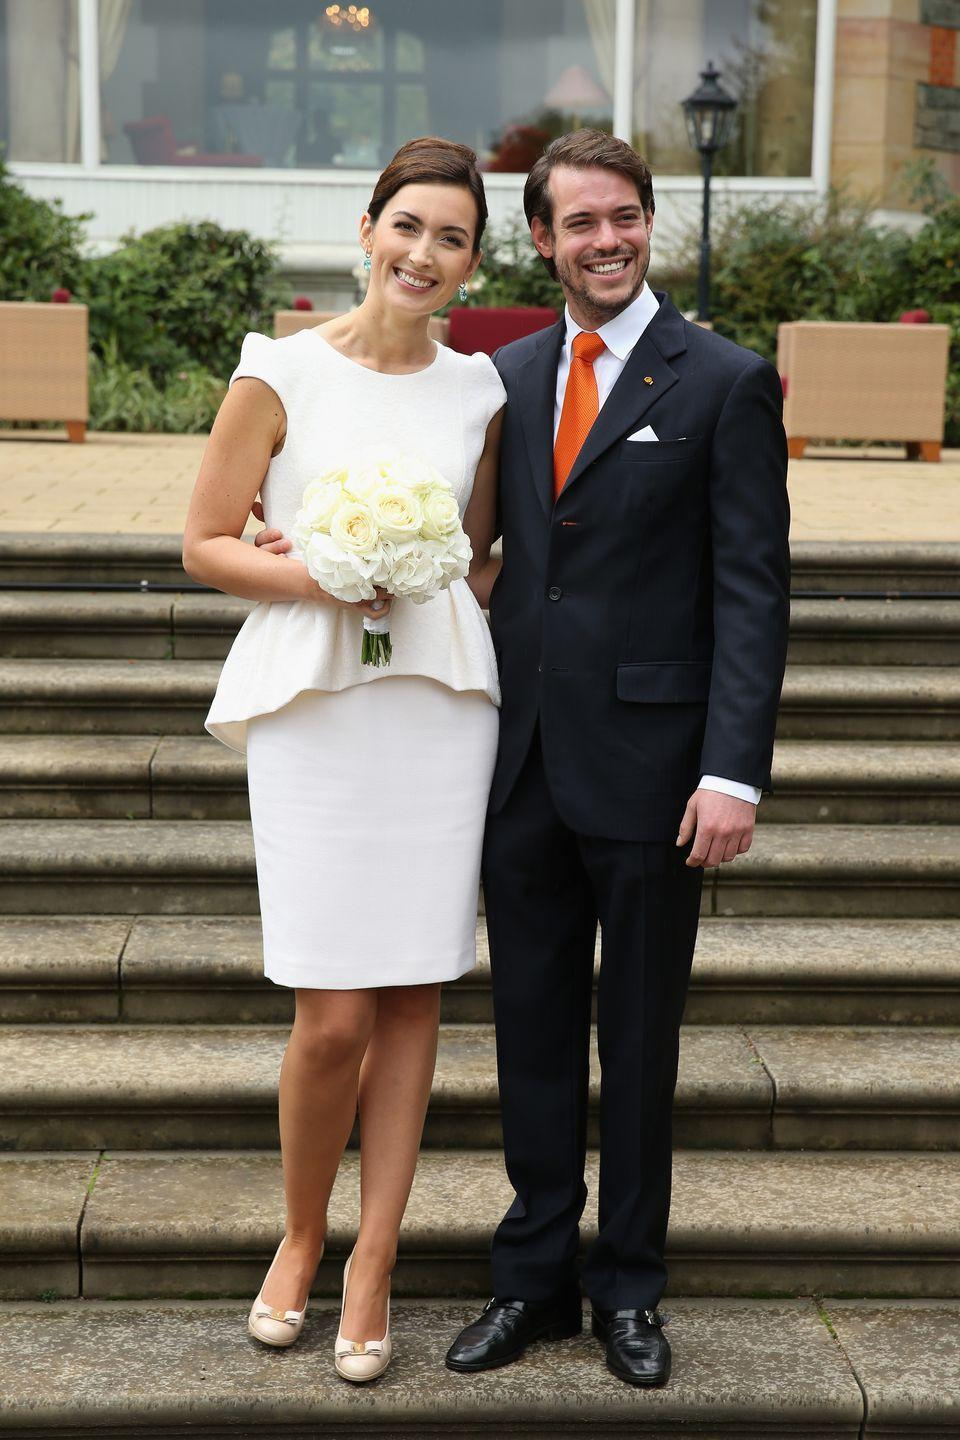 <p>Lademacher, an accomplished bioethics researcher and former Condé Nast employee, became Princess Claire of Luxembourg when she wed Prince Felix in 2013. The two met at a private university in Switzerland. </p>